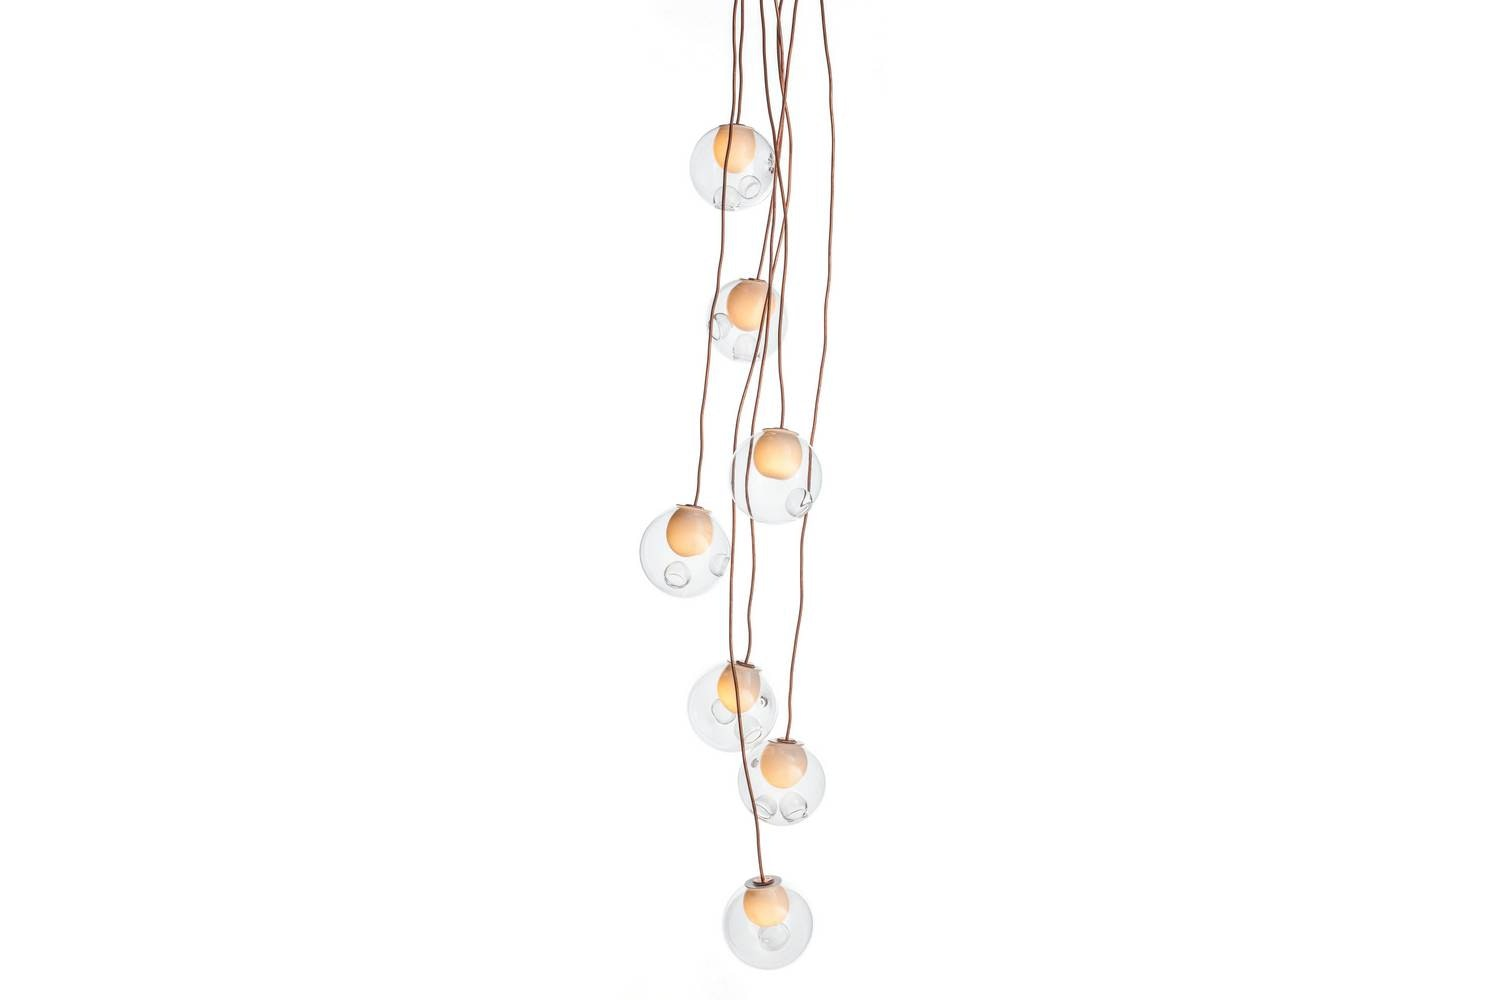 28.7 Copper Suspension Lamp by Omer Arbel for Bocci